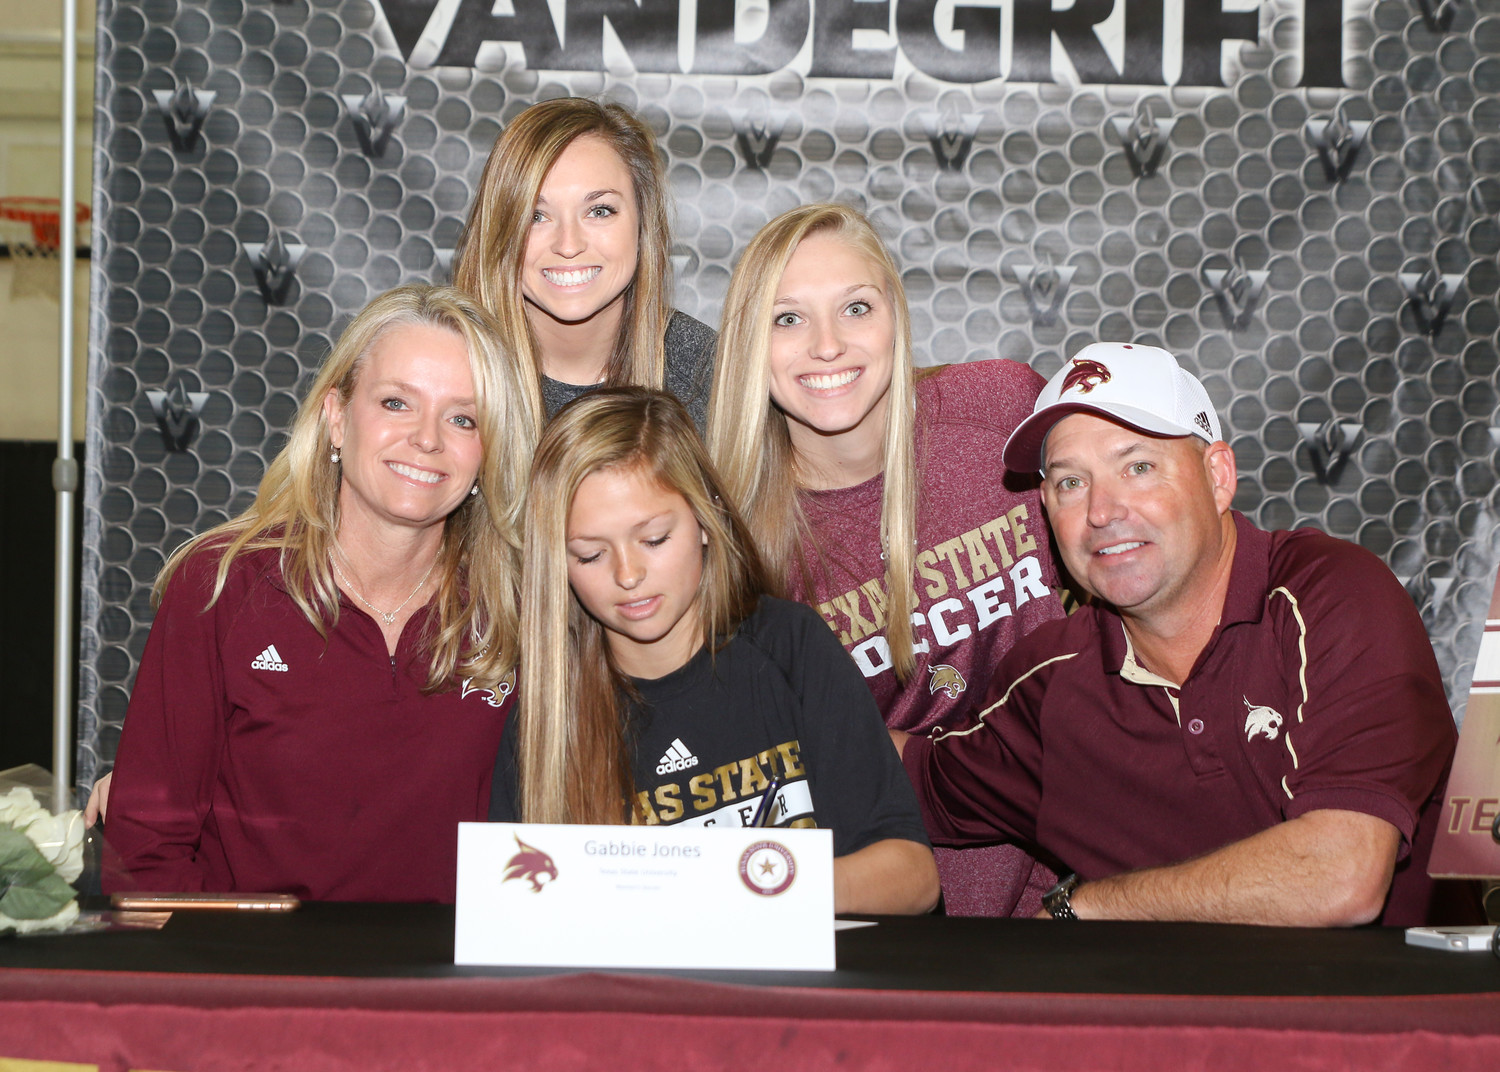 Gabbie Jones signed a letter of intent to play soccer at Texas State University during a signing day ceremony at Vandegrift High School on February 7, 2018.